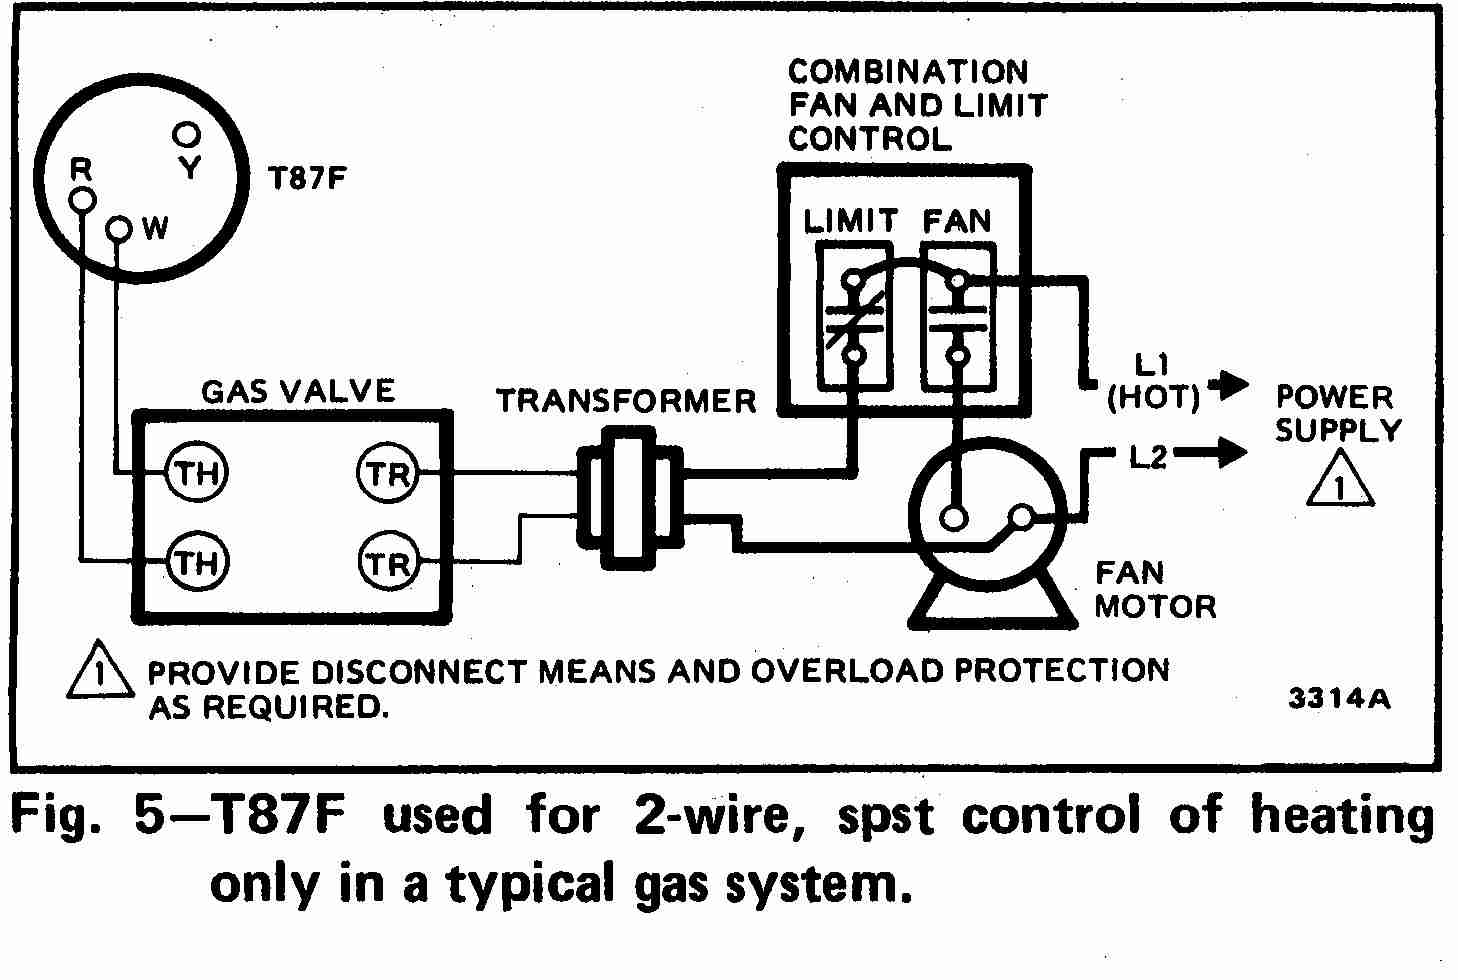 TT_T87F_0002_2Wg_DJF room thermostat wiring diagrams for hvac systems lennox wiring diagram at edmiracle.co